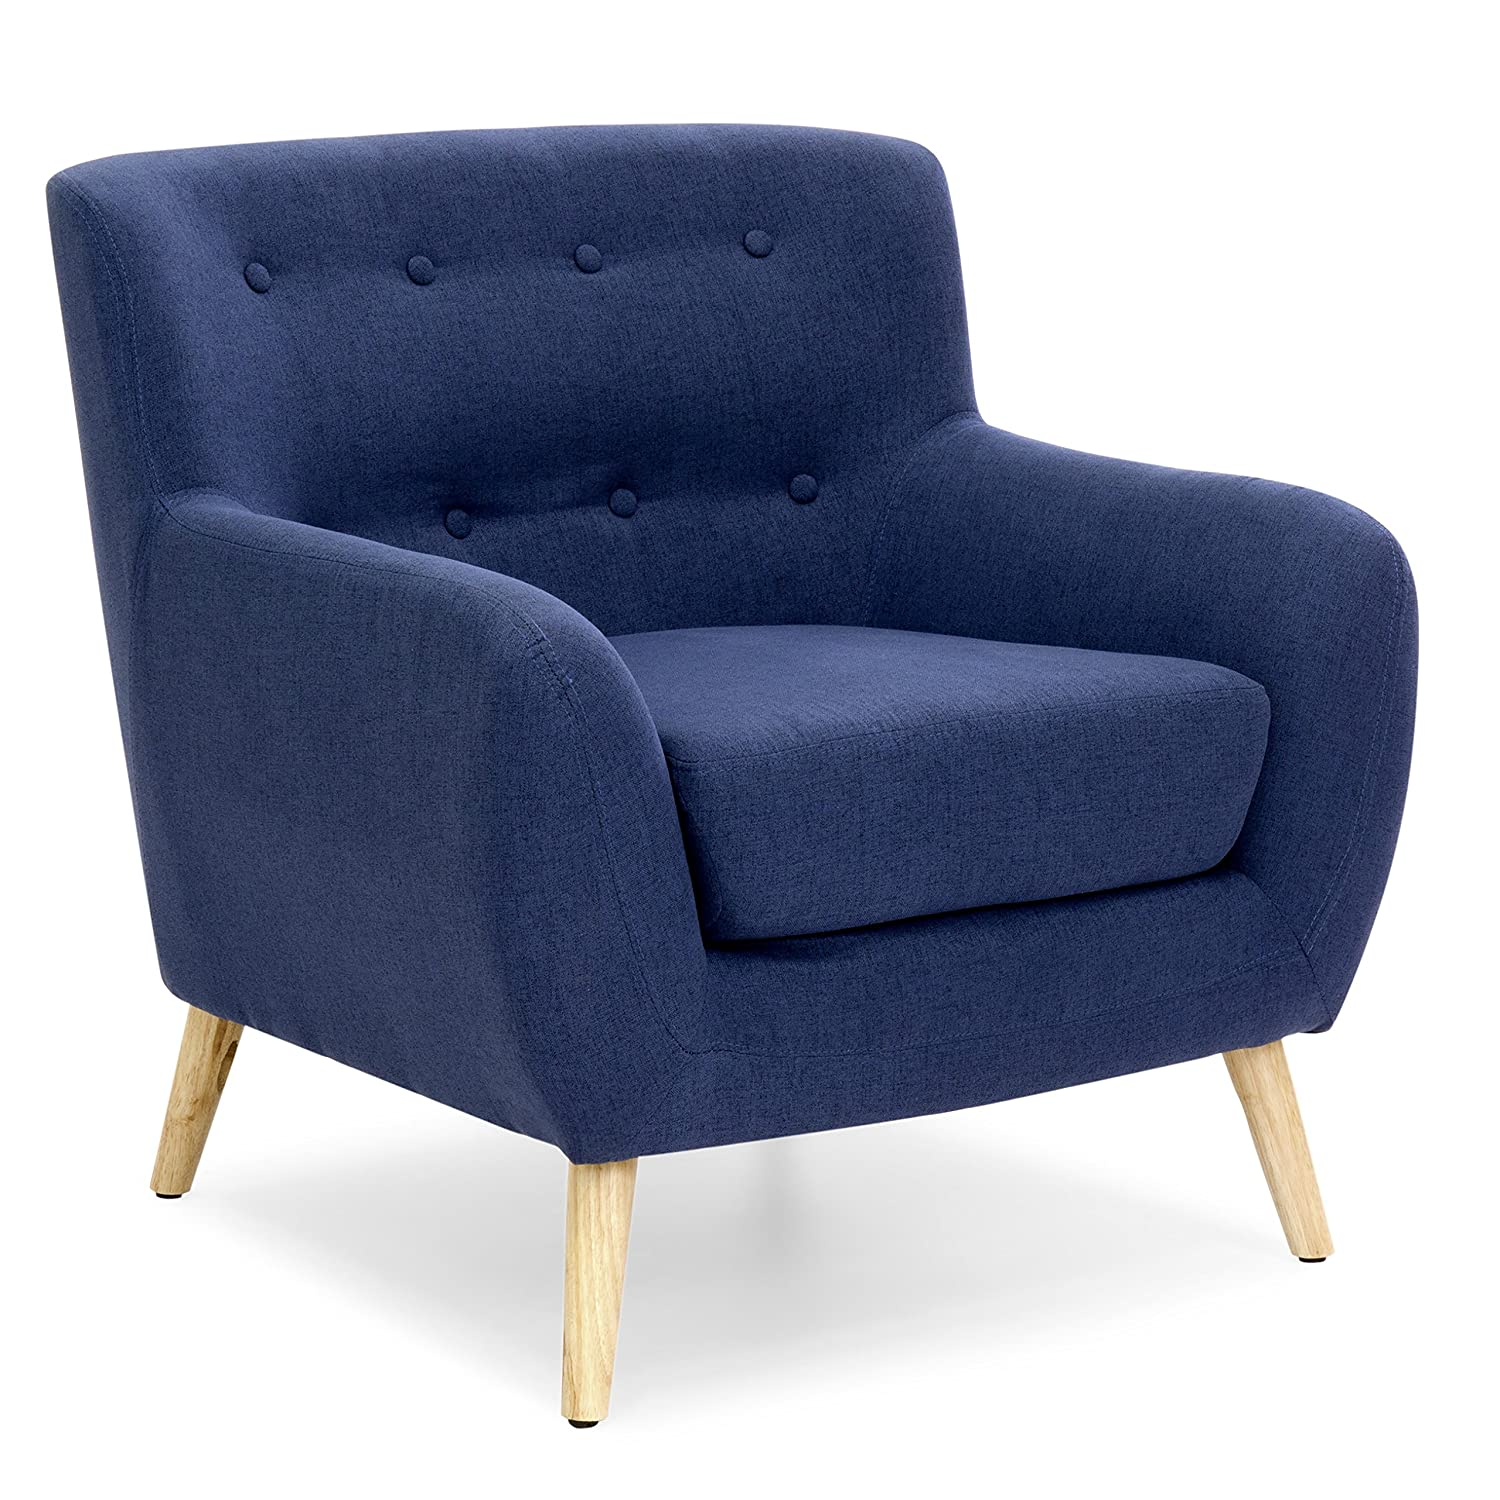 Amazon.com Best Choice Products Mid-Century Modern Linen Upholstered Button Tufted Accent Chair for Living Room Bedroom - Dark Blue Kitchen u0026 Dining  sc 1 st  Amazon.com & Amazon.com: Best Choice Products Mid-Century Modern Linen ...